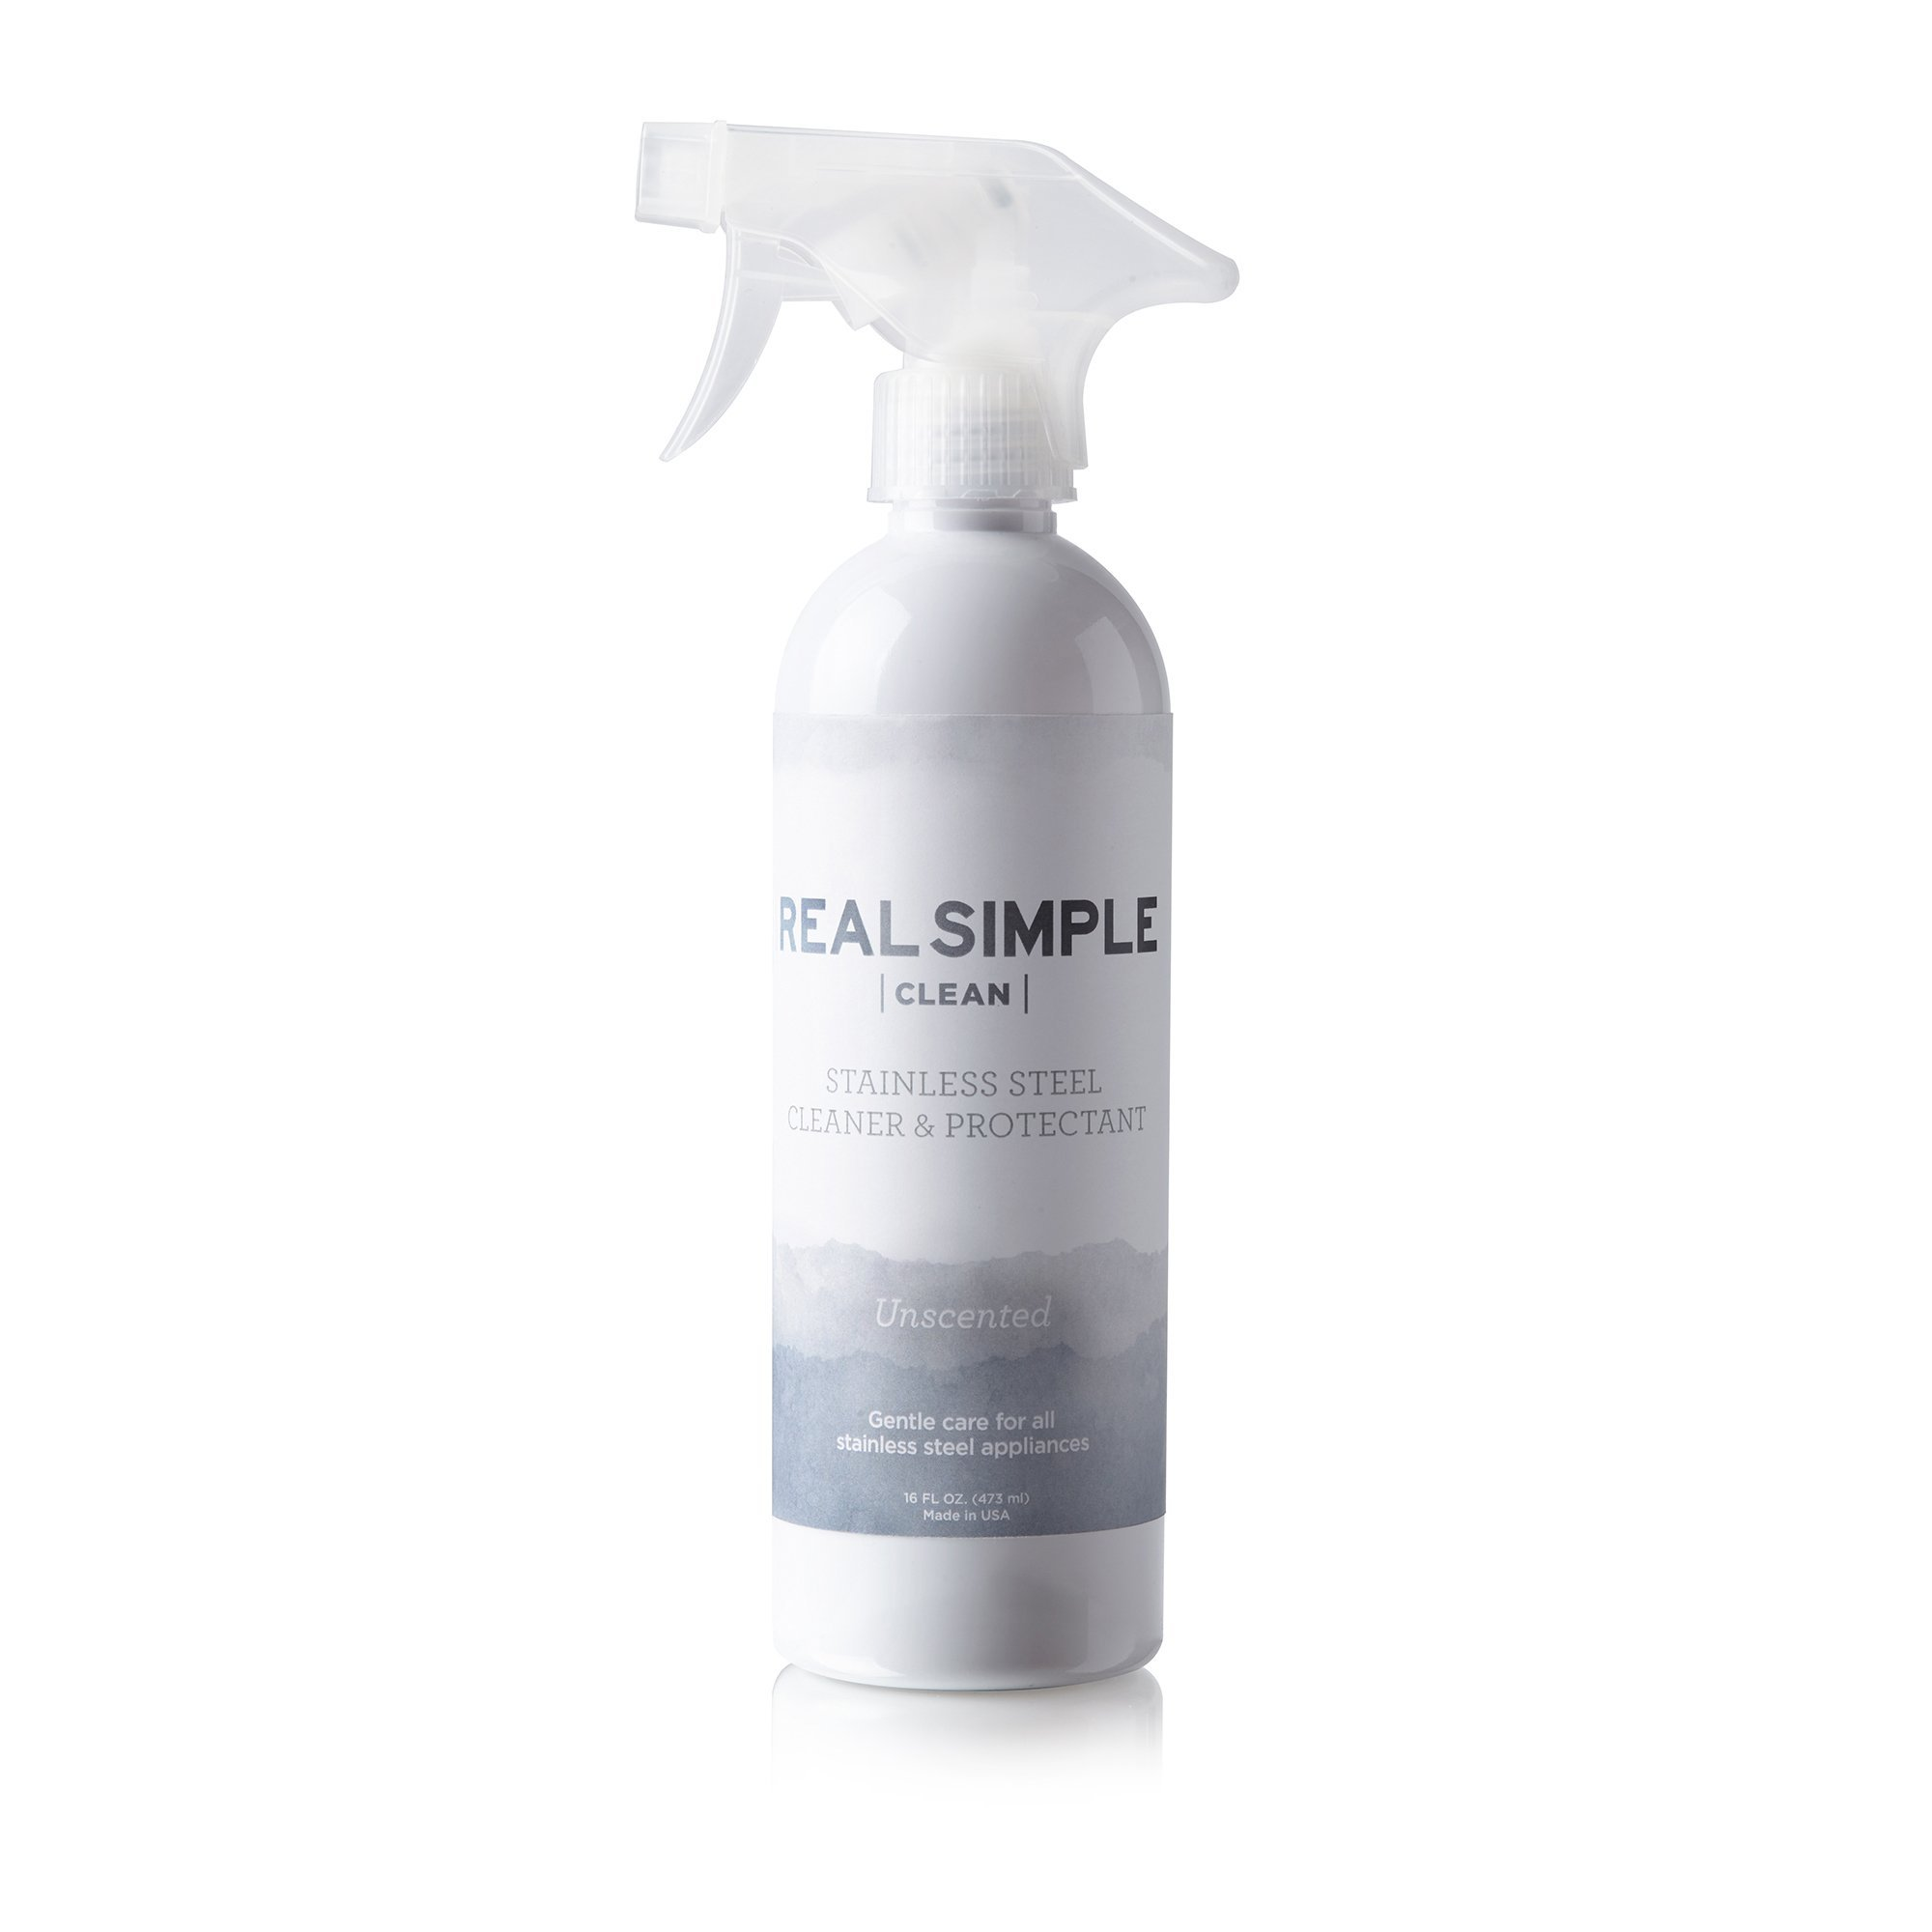 Amazon.com: Real Simple Clean Granite Countertop Rejuvenator, Returns The Natural Shine to Your ...